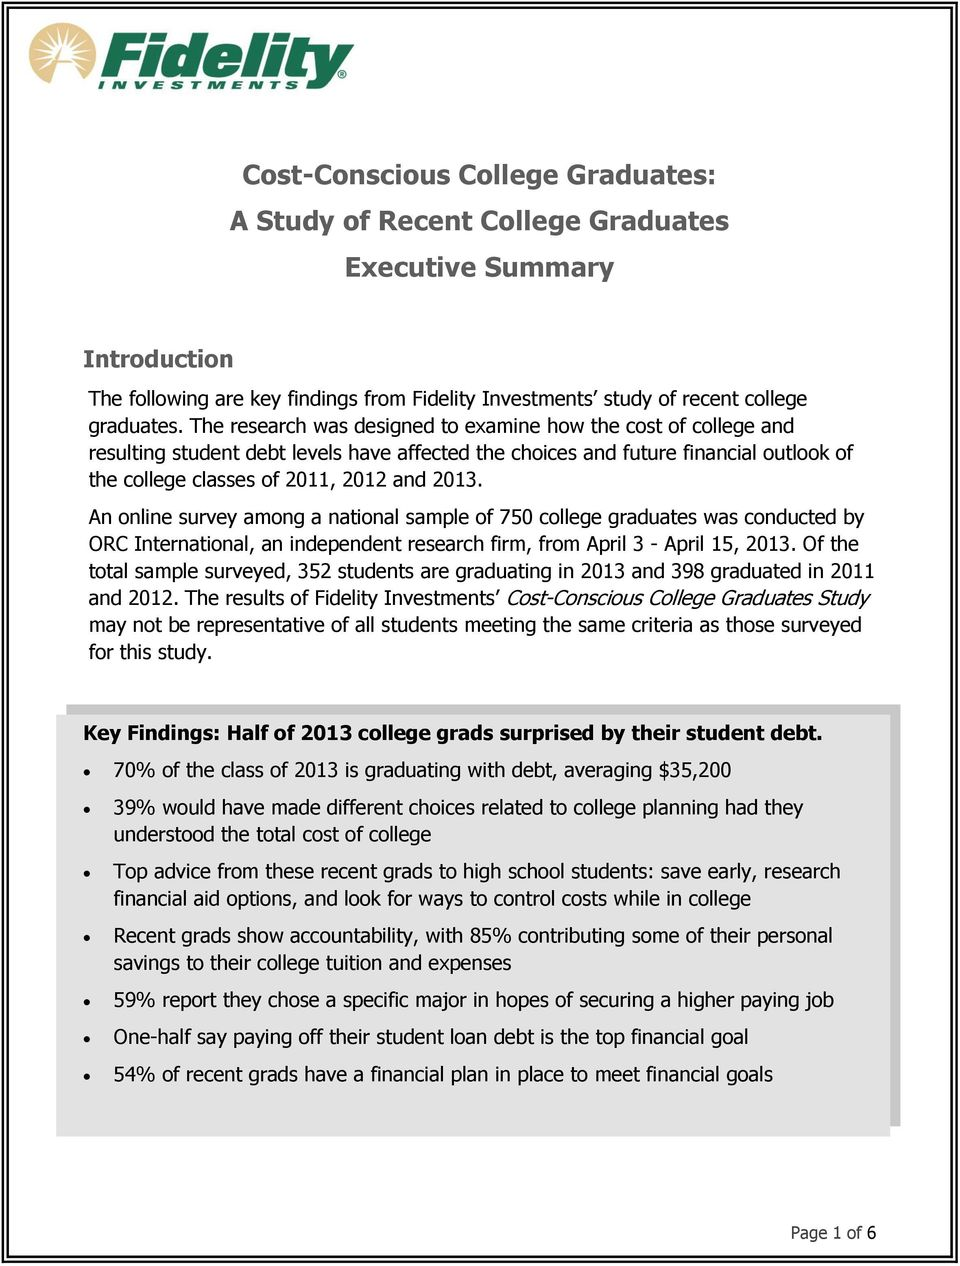 An online survey among a national sample of 750 college graduates was conducted by ORC International, an independent research firm, from April 3 - April 15, 2013.